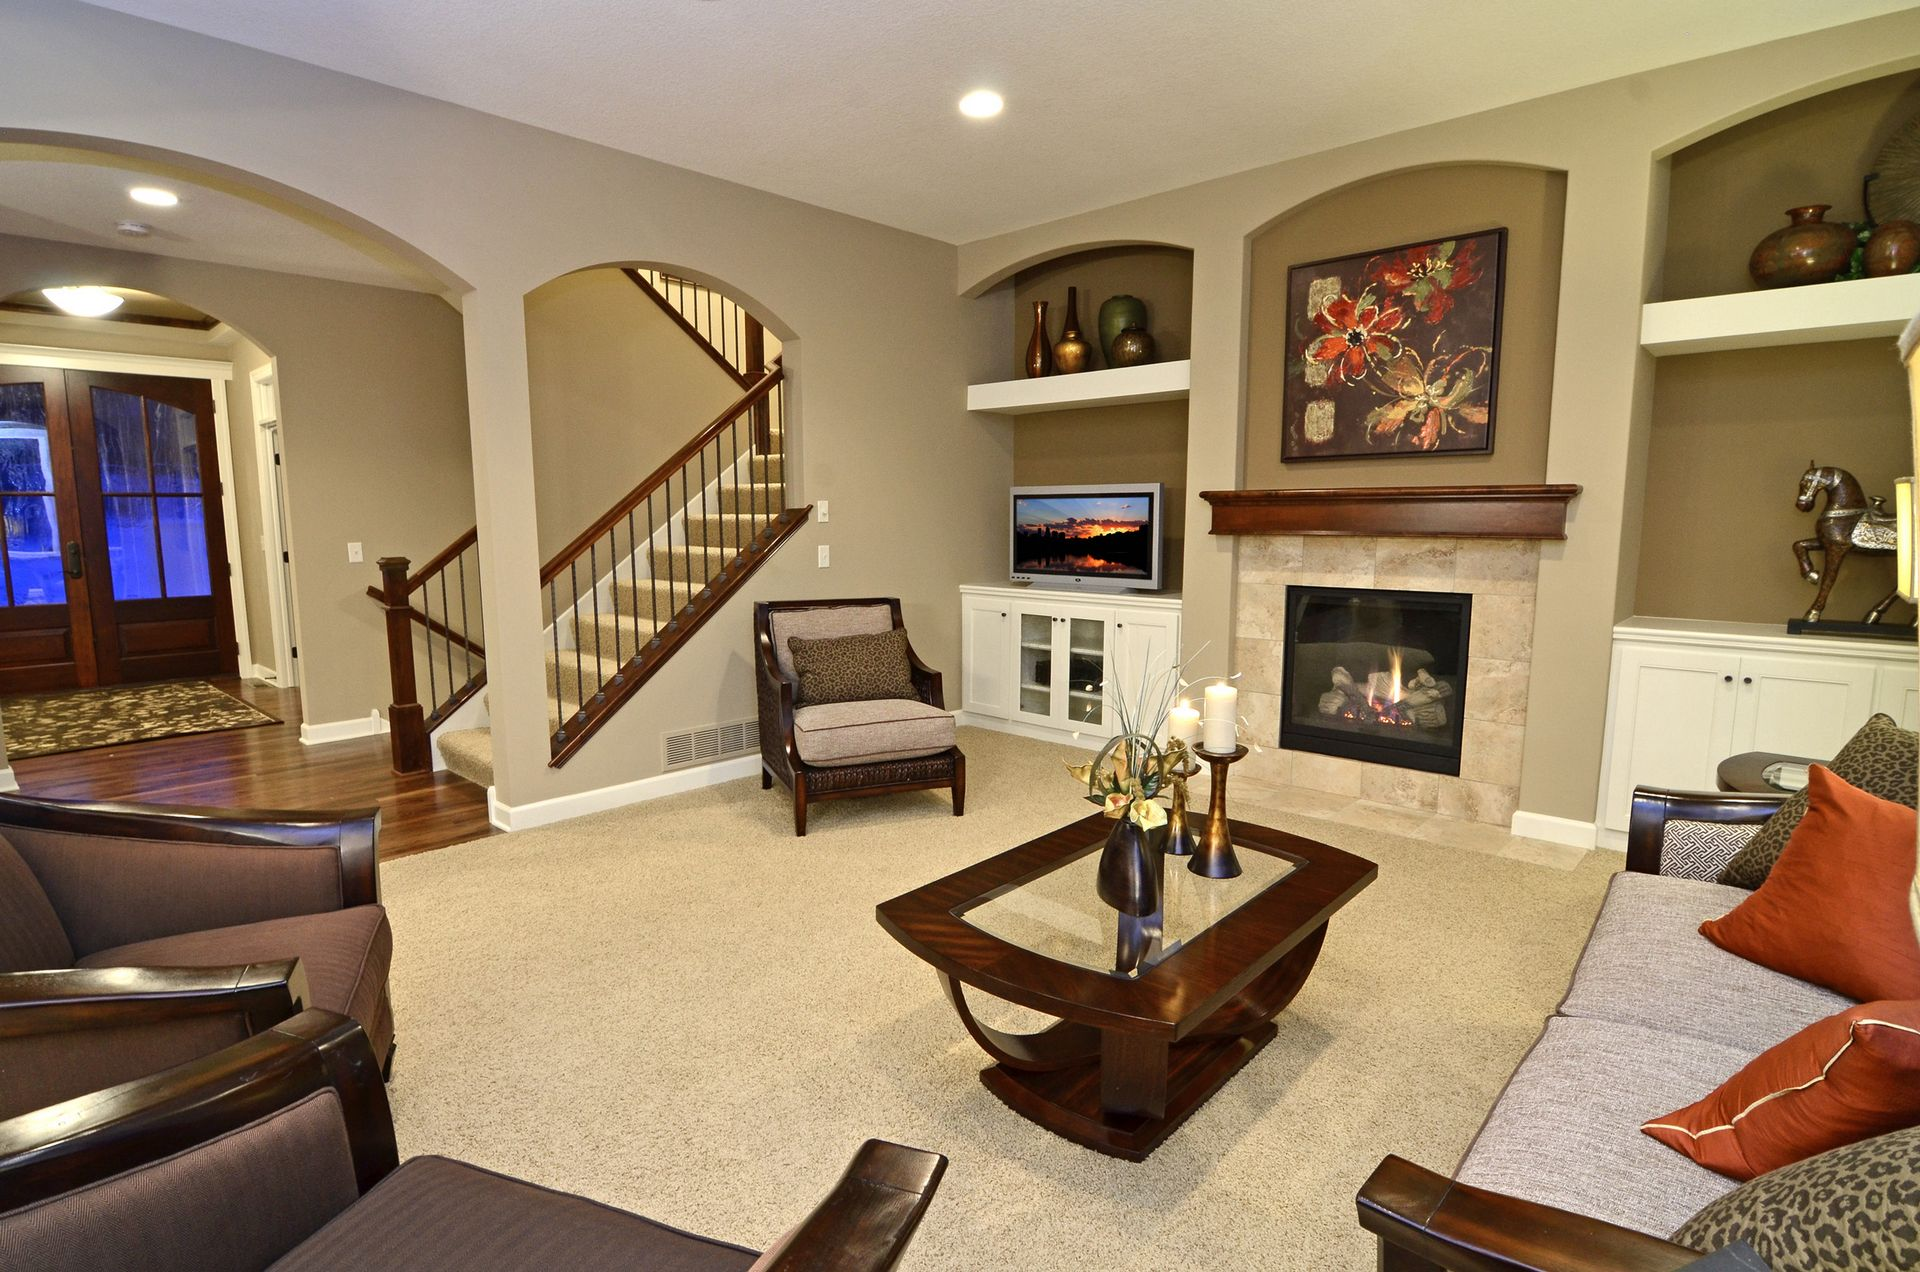 Stunning Craftsman Home With Sunroom - 73337hs 2nd Floor